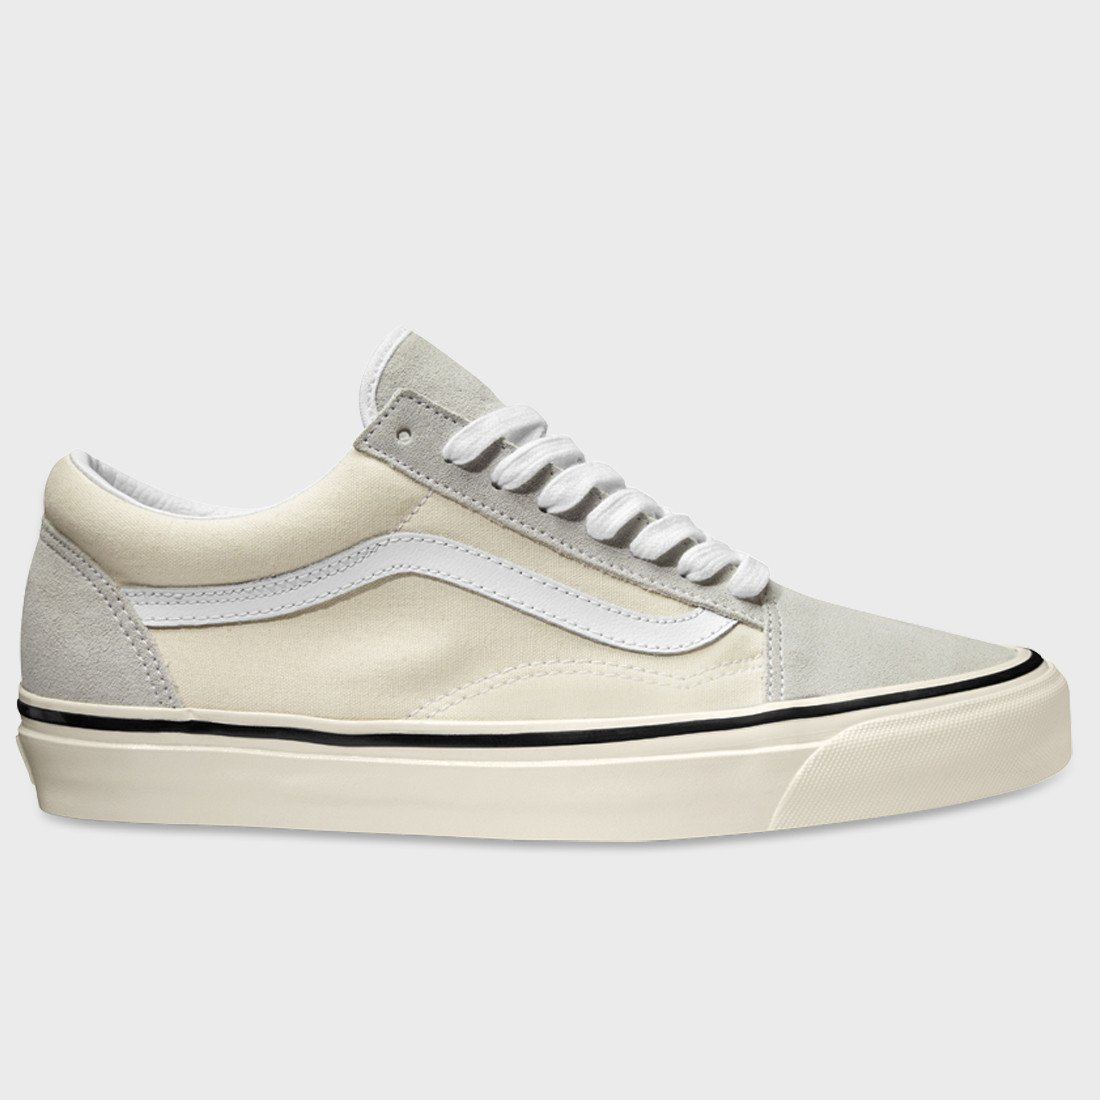 Vans Old Skool 36 DX White